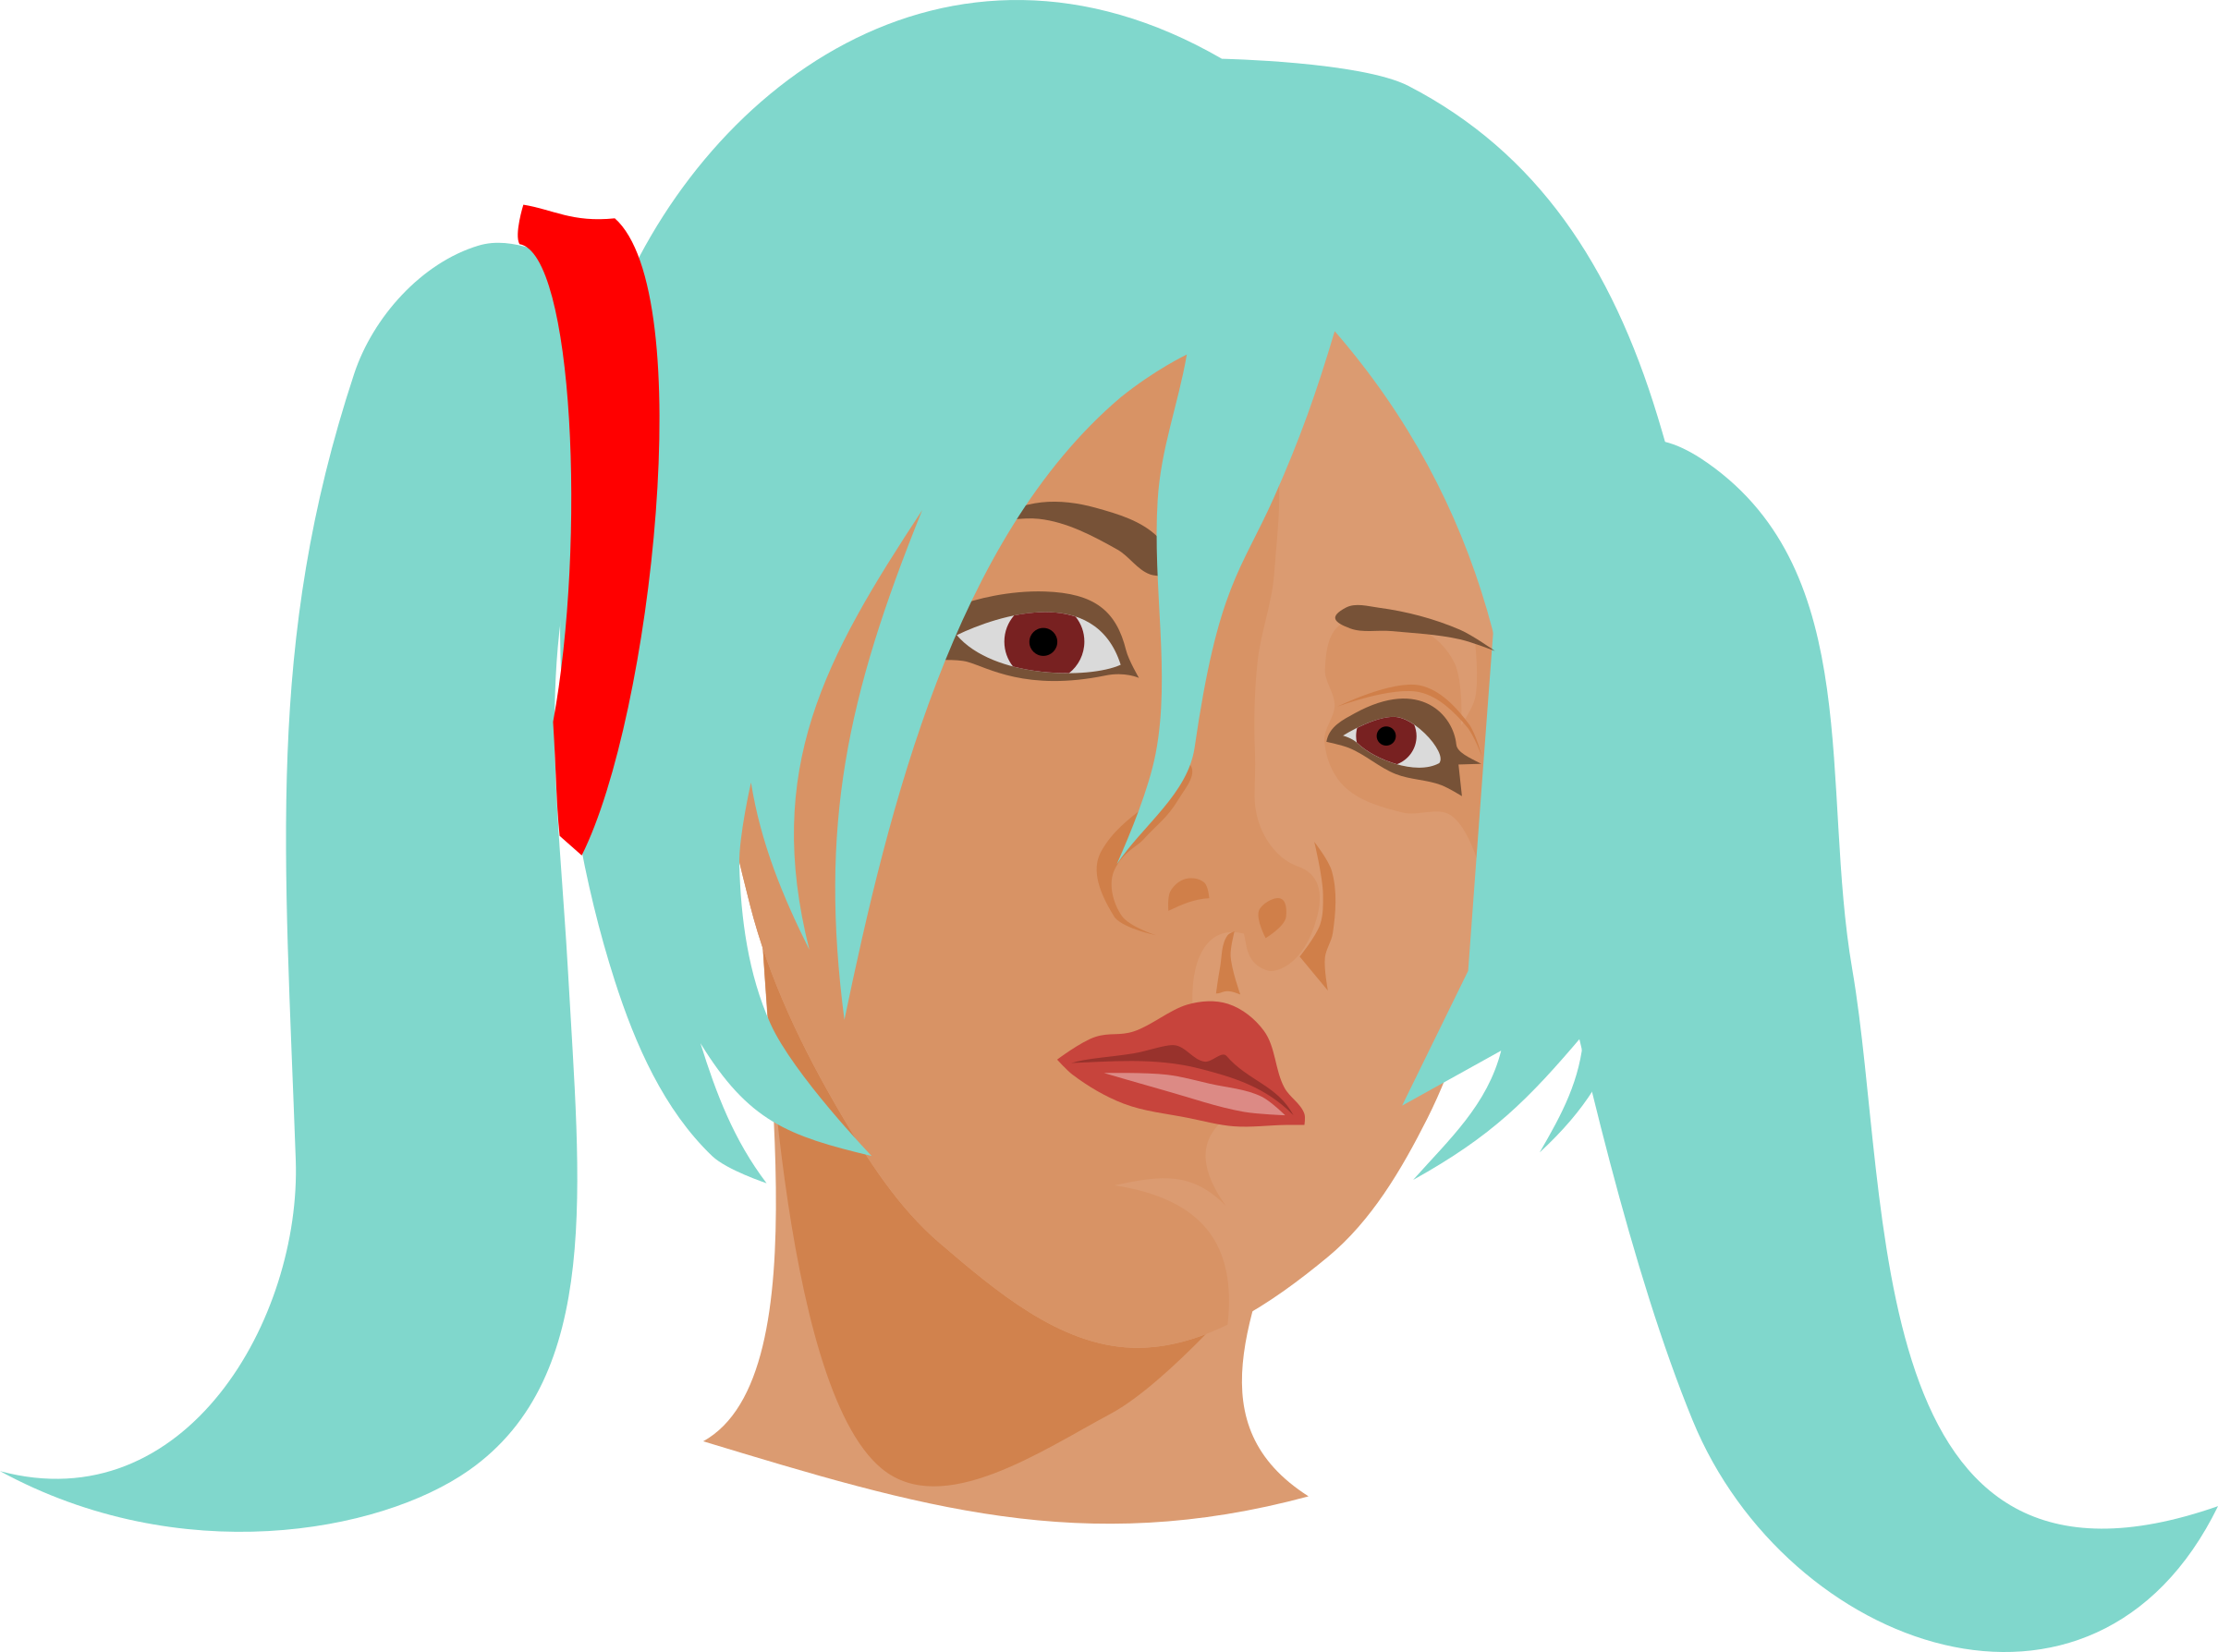 Beauty clipart beauty face. No cosplay big image